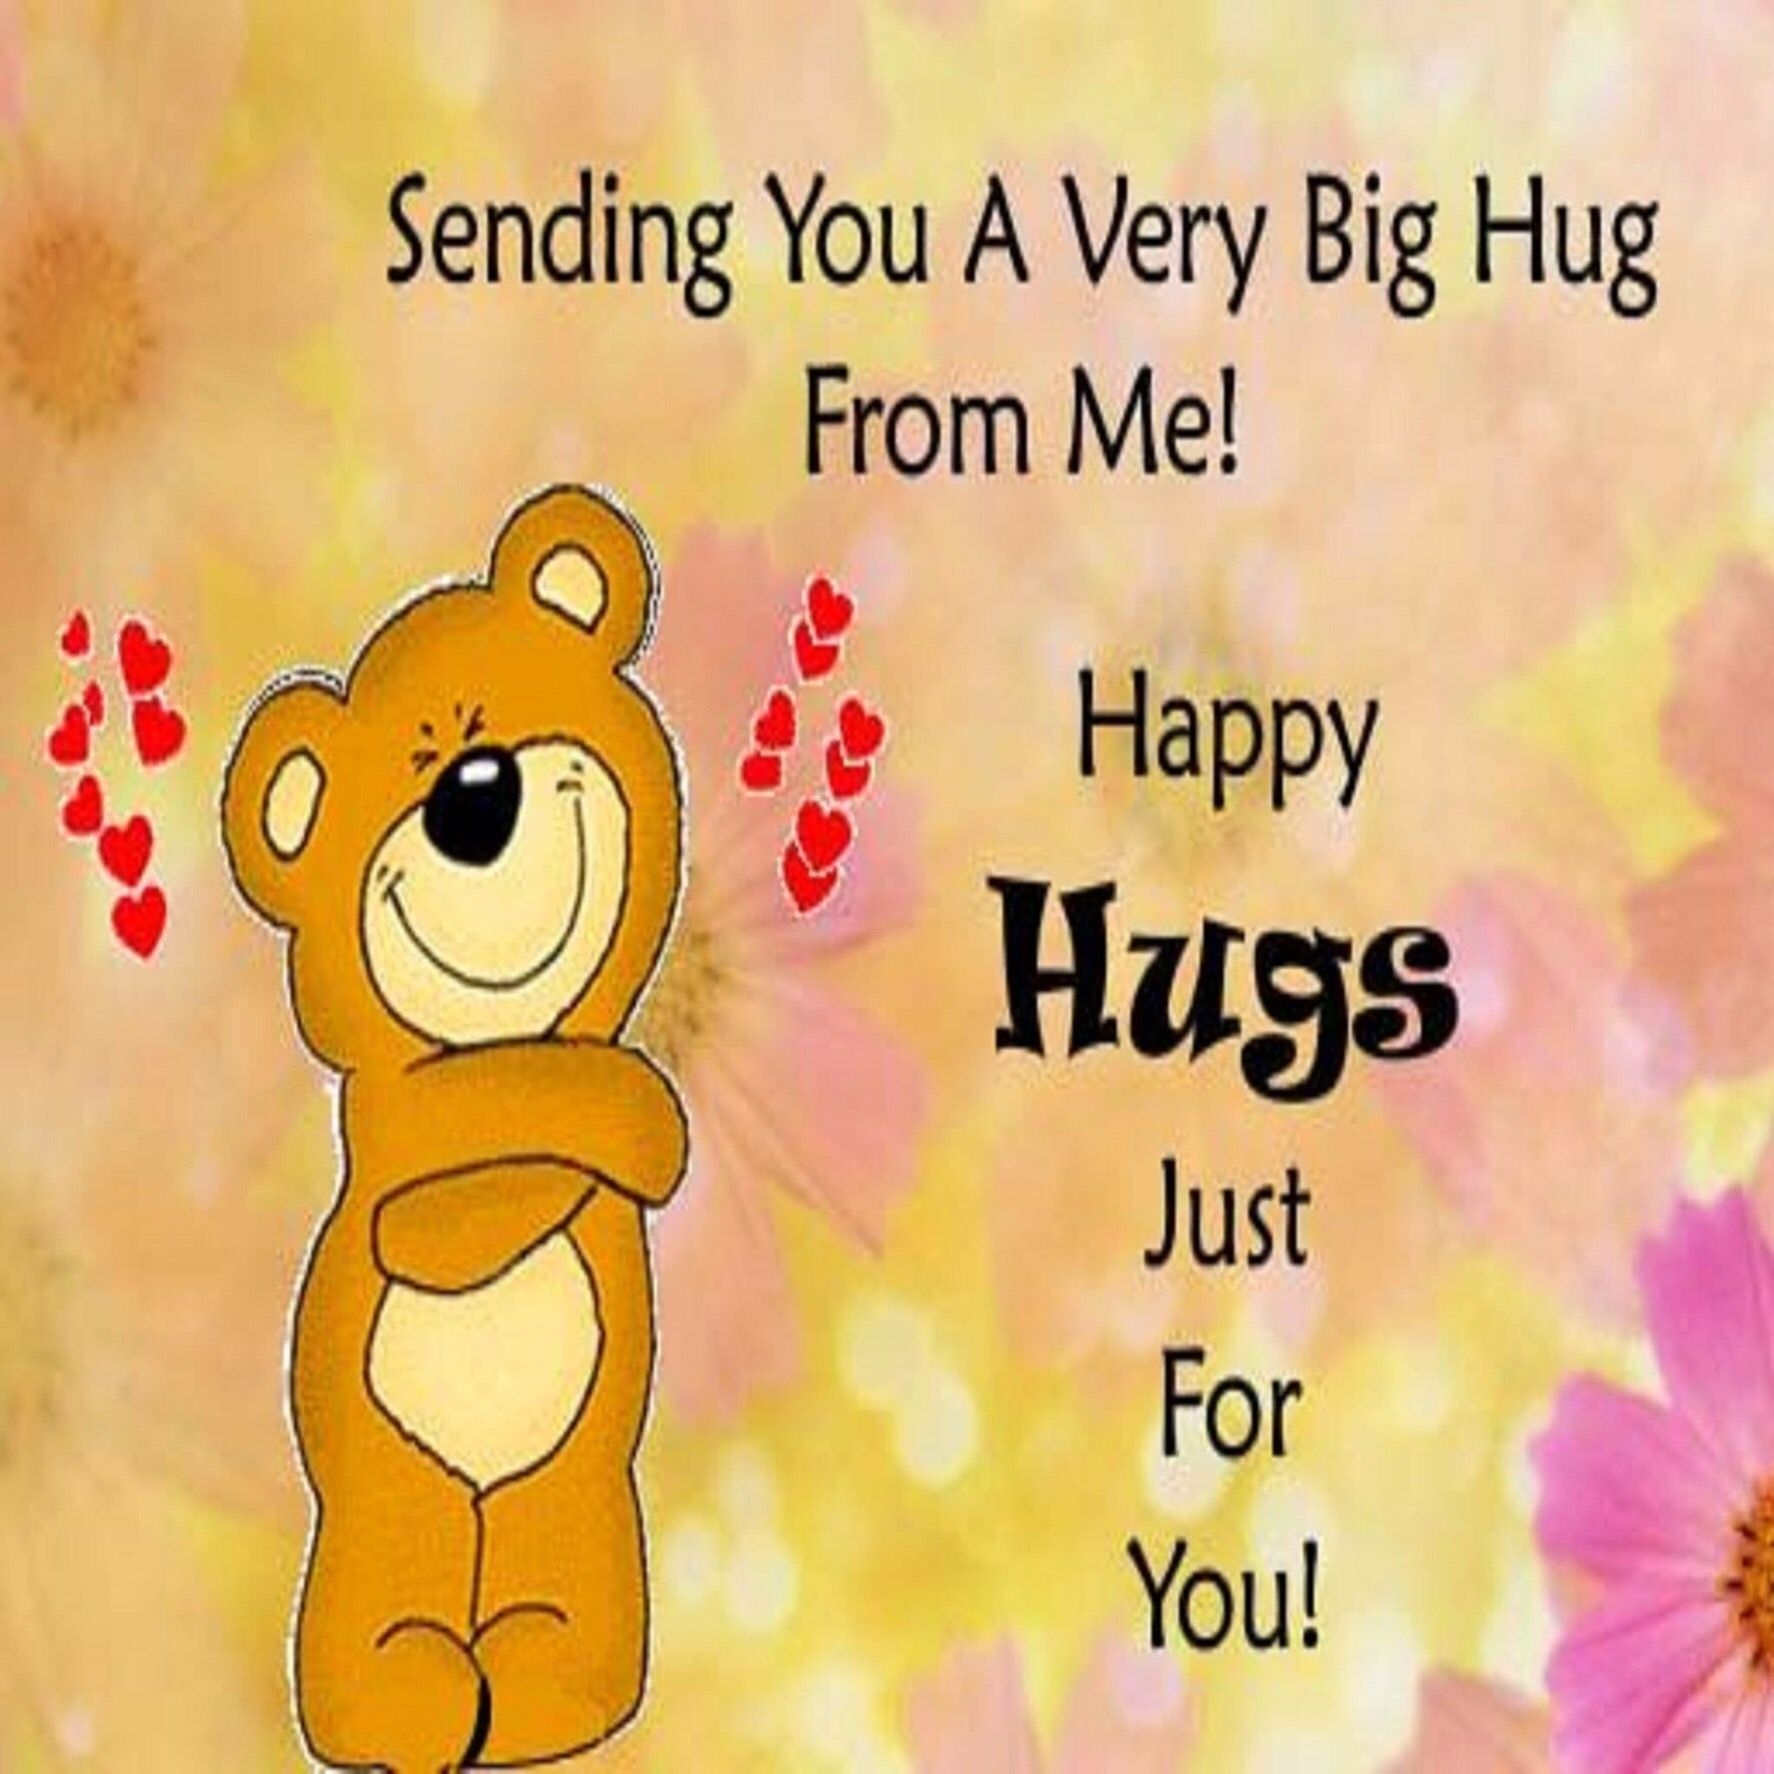 Pin By Amy On Sayings Hug Quotes Hugs And Kisses Quotes Happy Hug Day